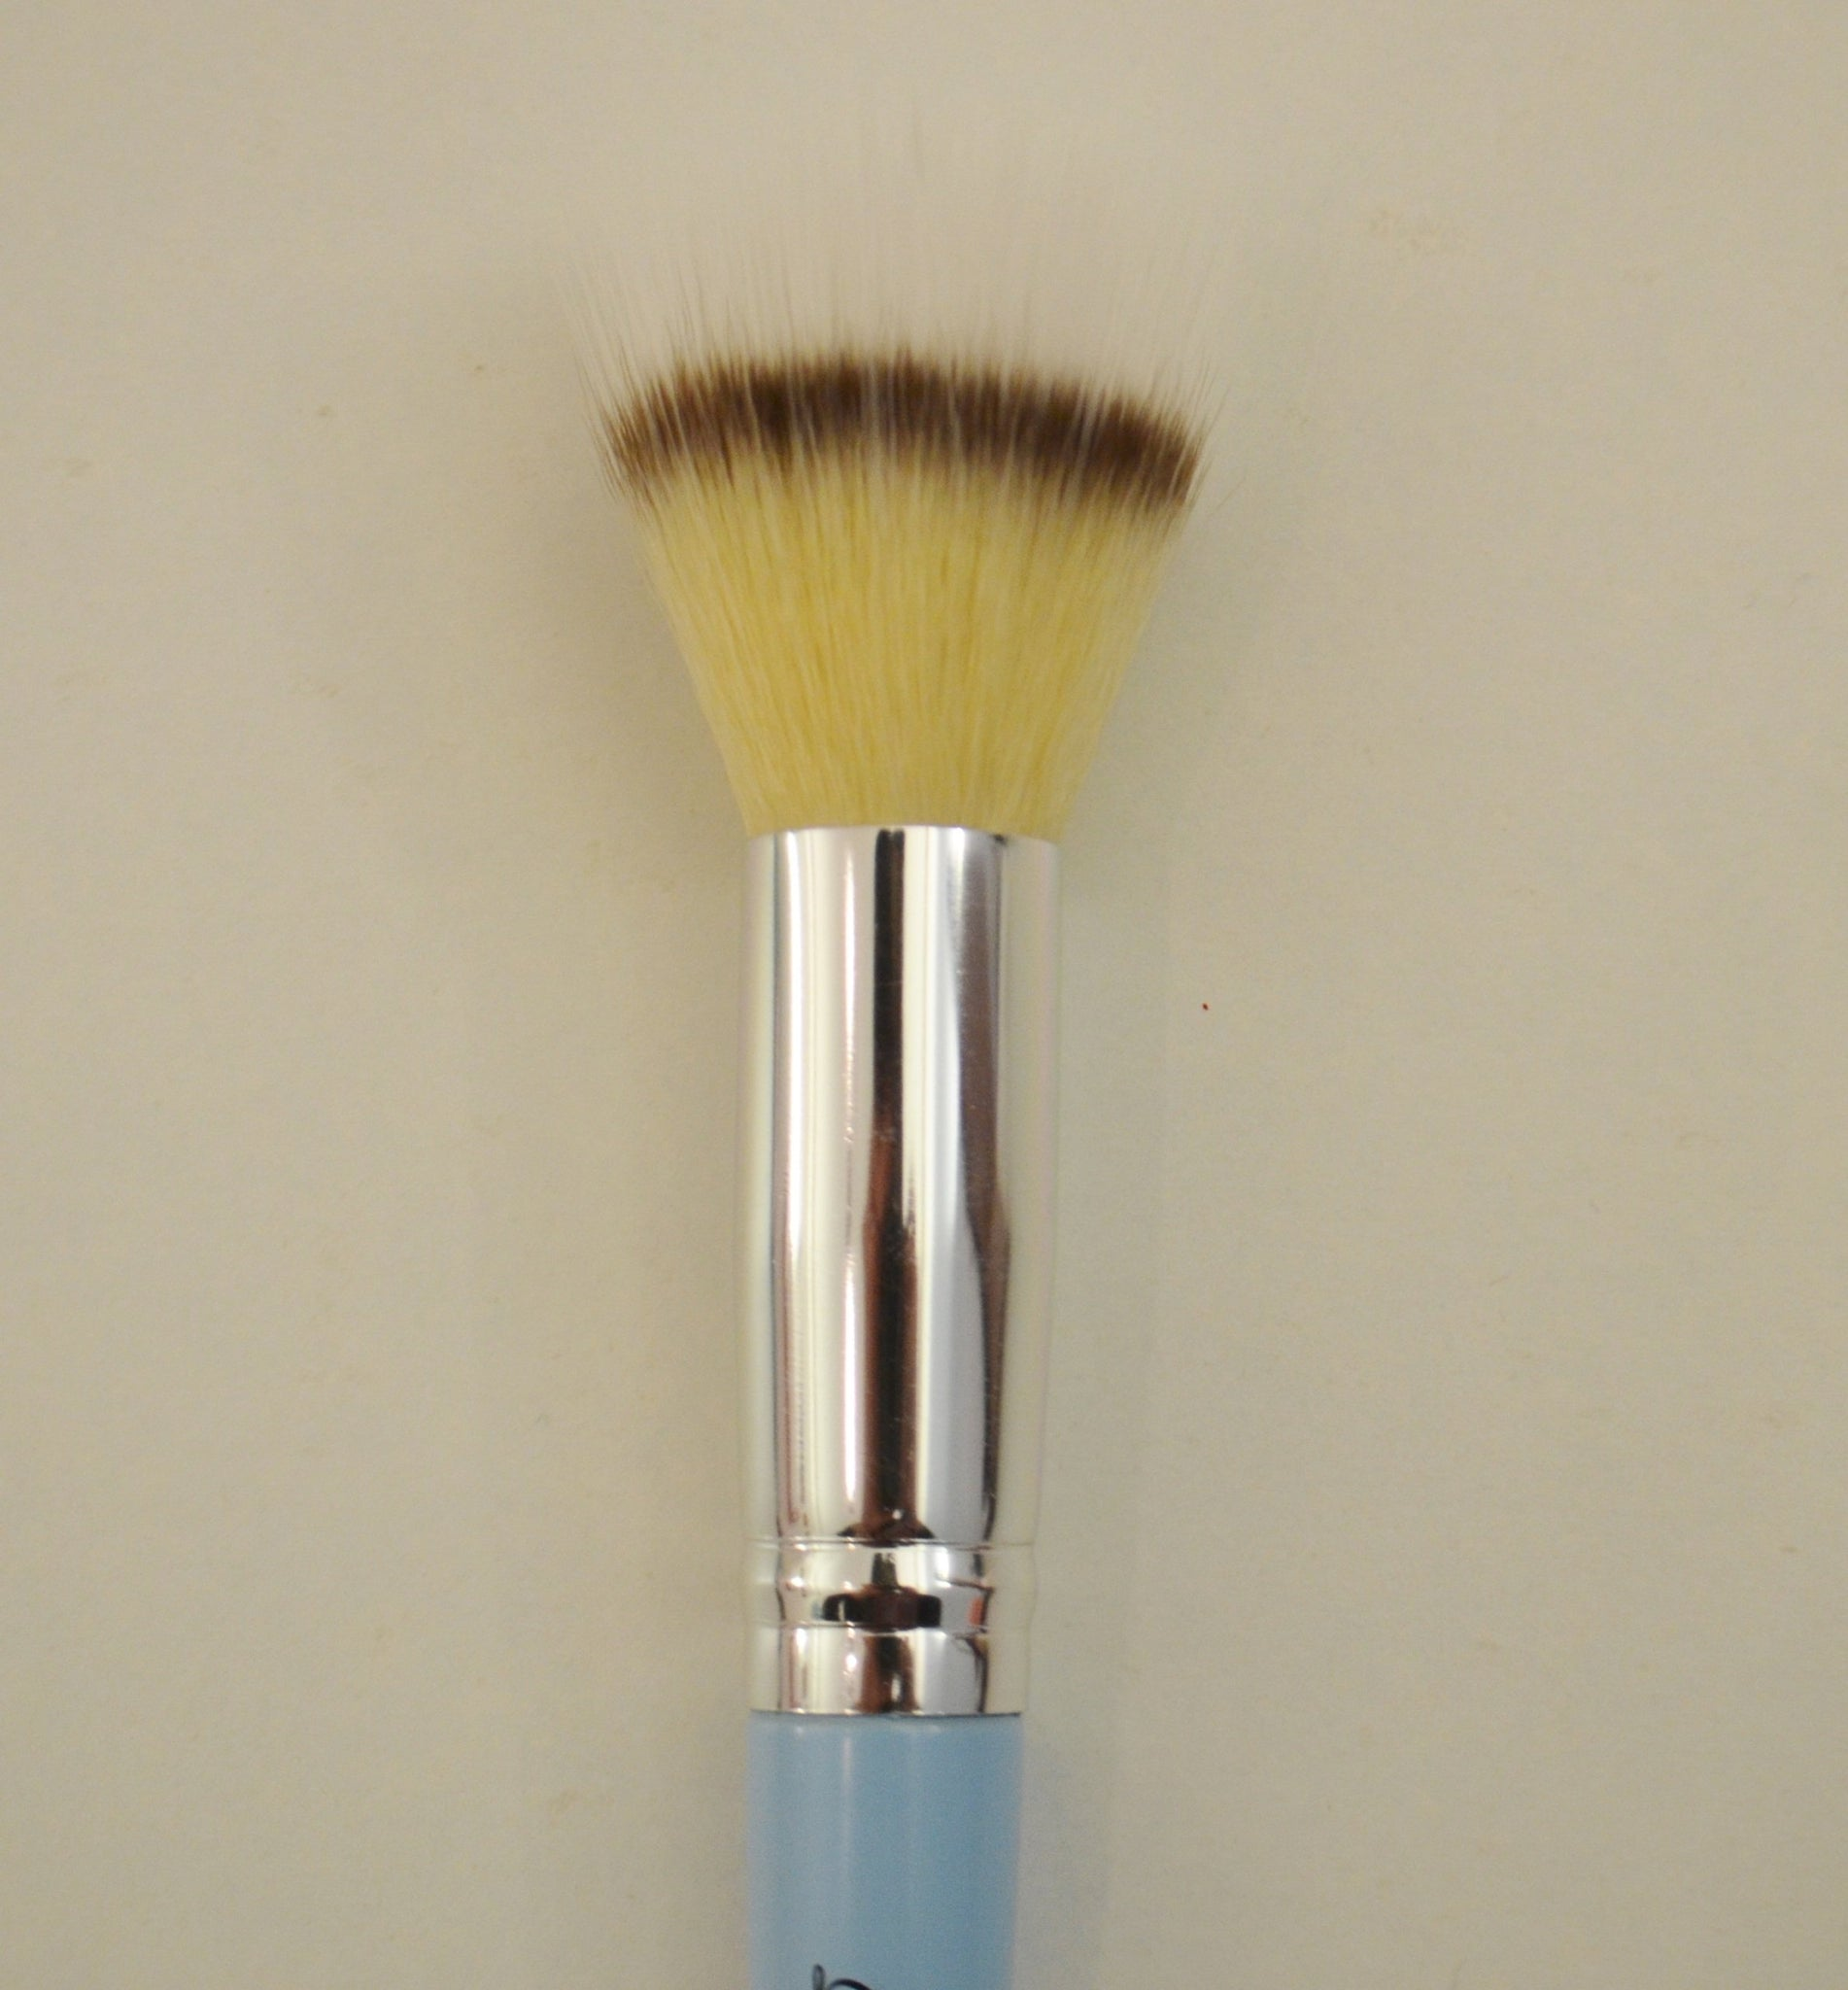 Duel End Stipple & Concealer Brush by Le Keux Cosmetics